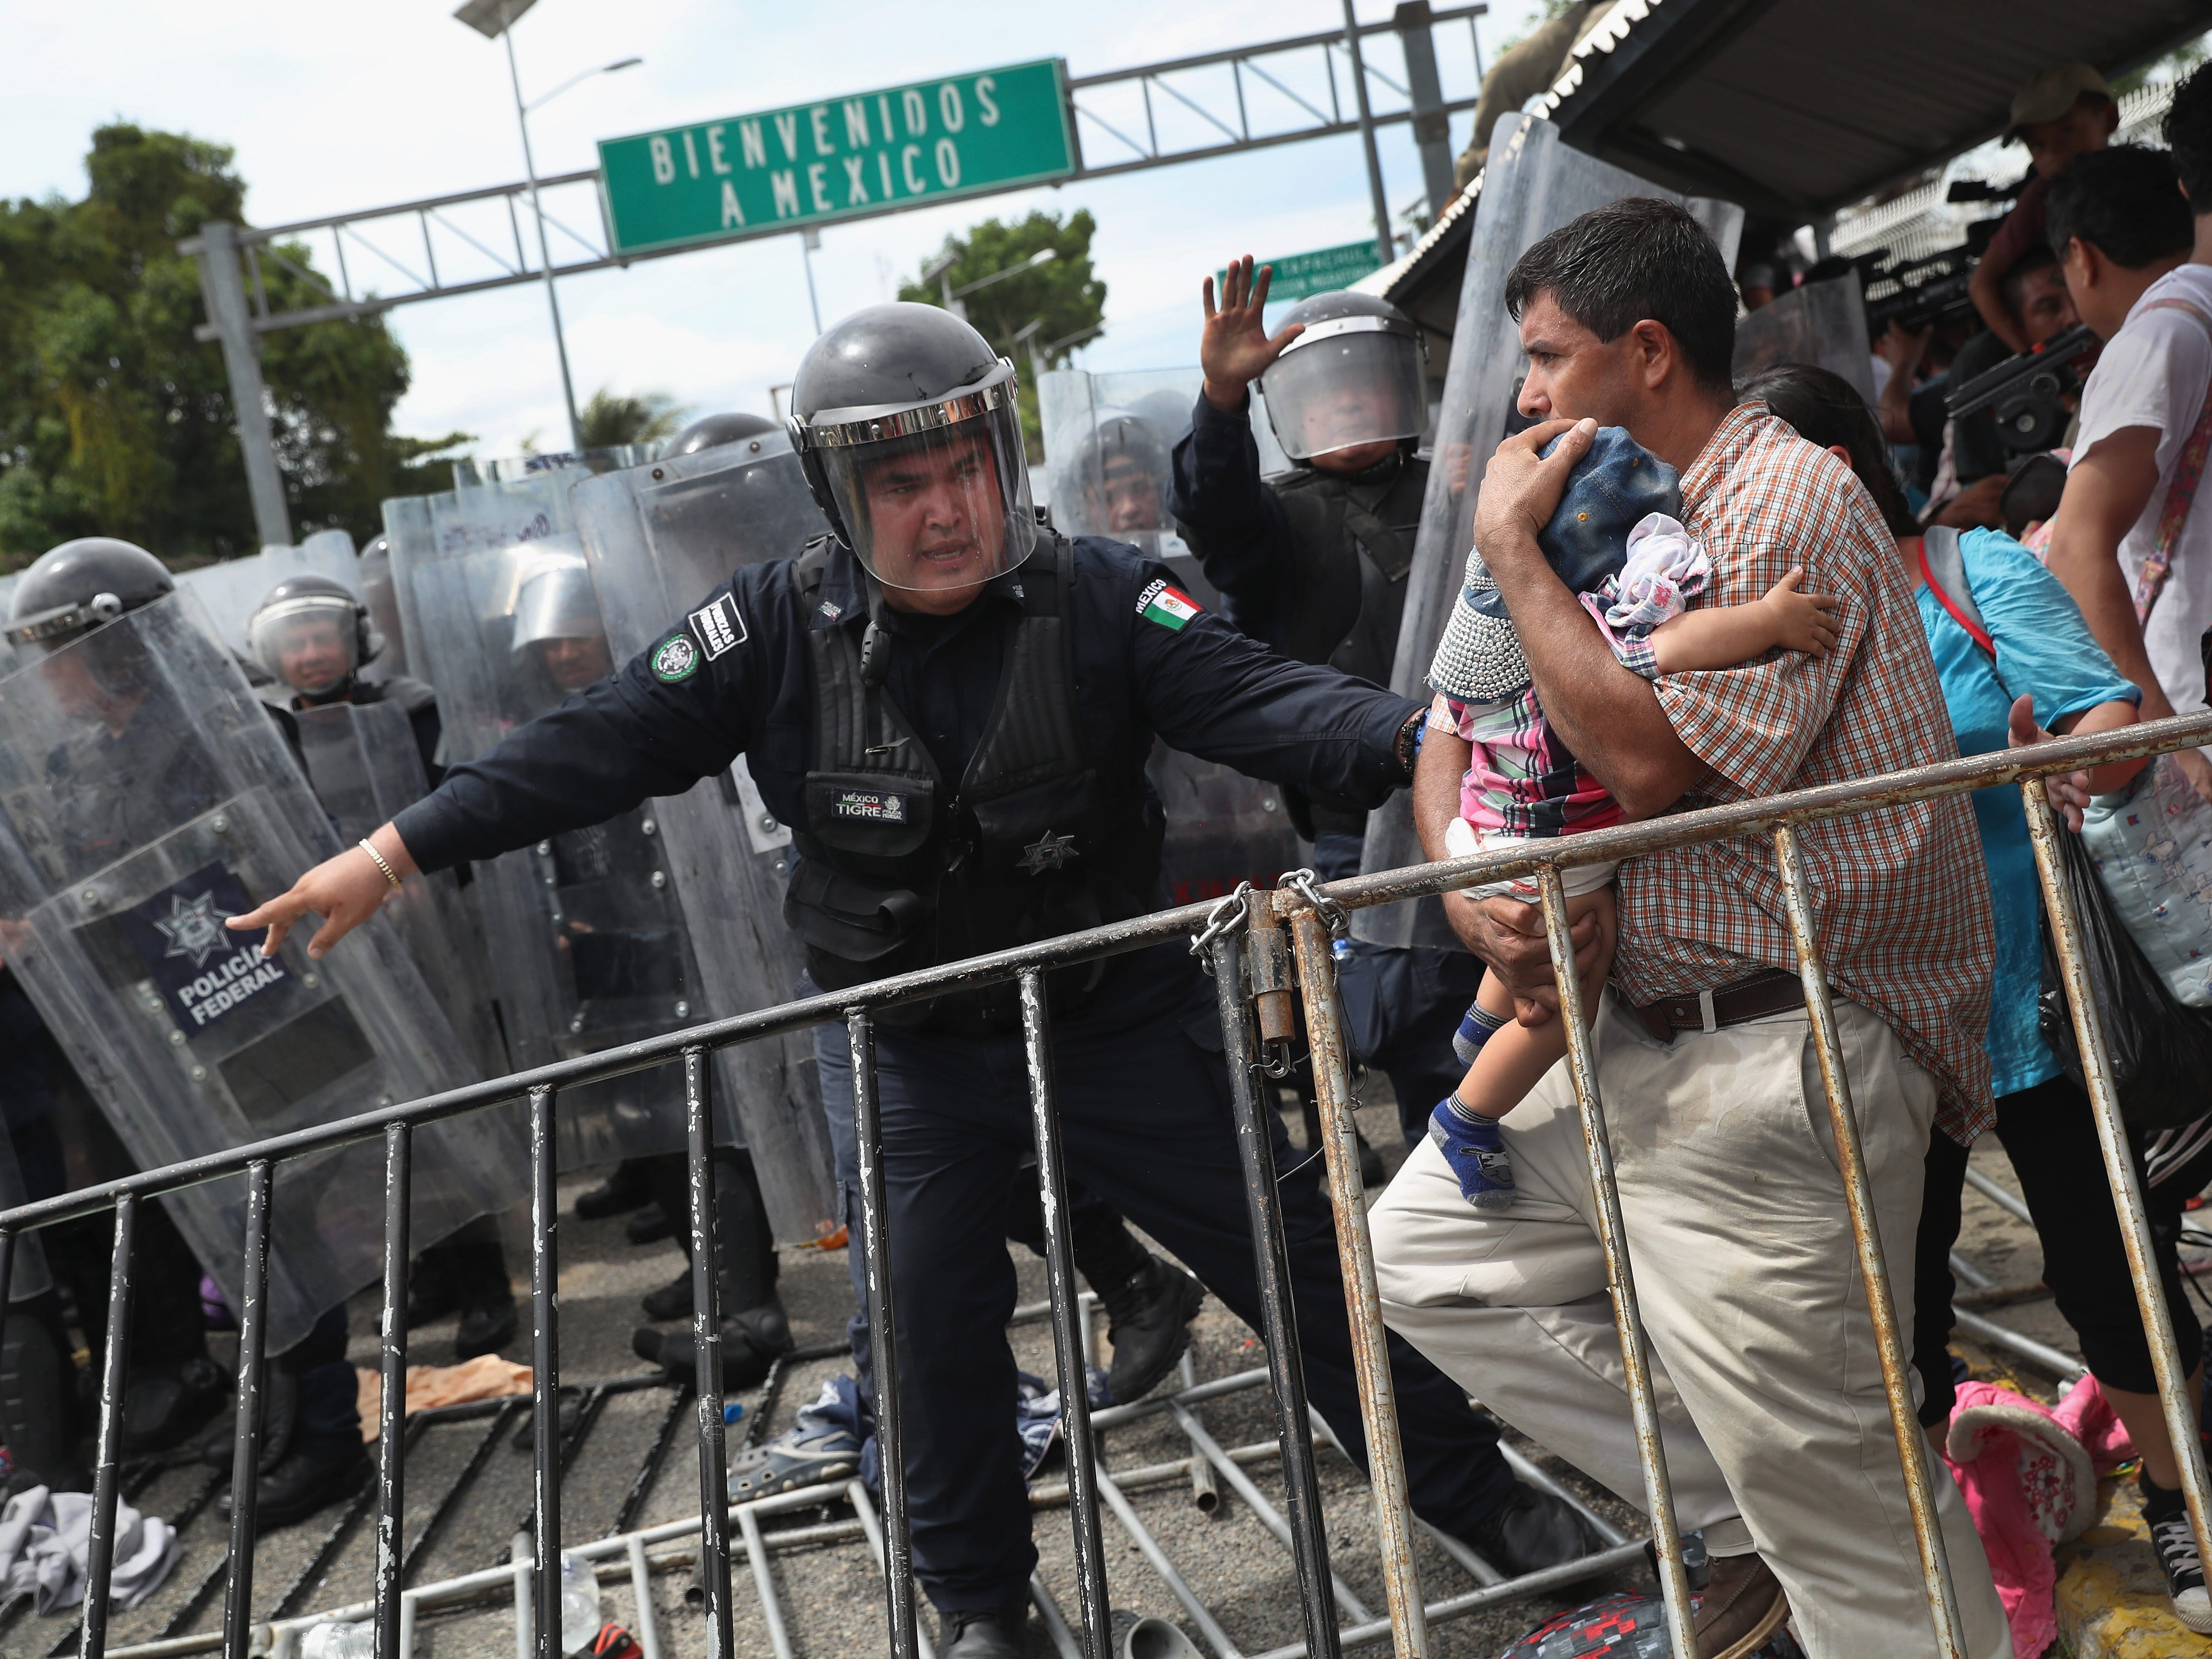 A Mexican riot policeman protects an immigrant father and child during a clash between police and the migrant caravan on the border between Mexico and Guatemala on October 19, 2018 in Ciudad Tecun Uman, Guatemala. A faceoff occurred when the caravan of thousands of migrants tried to enter Mexico after pushing past Guatemalan security forces.